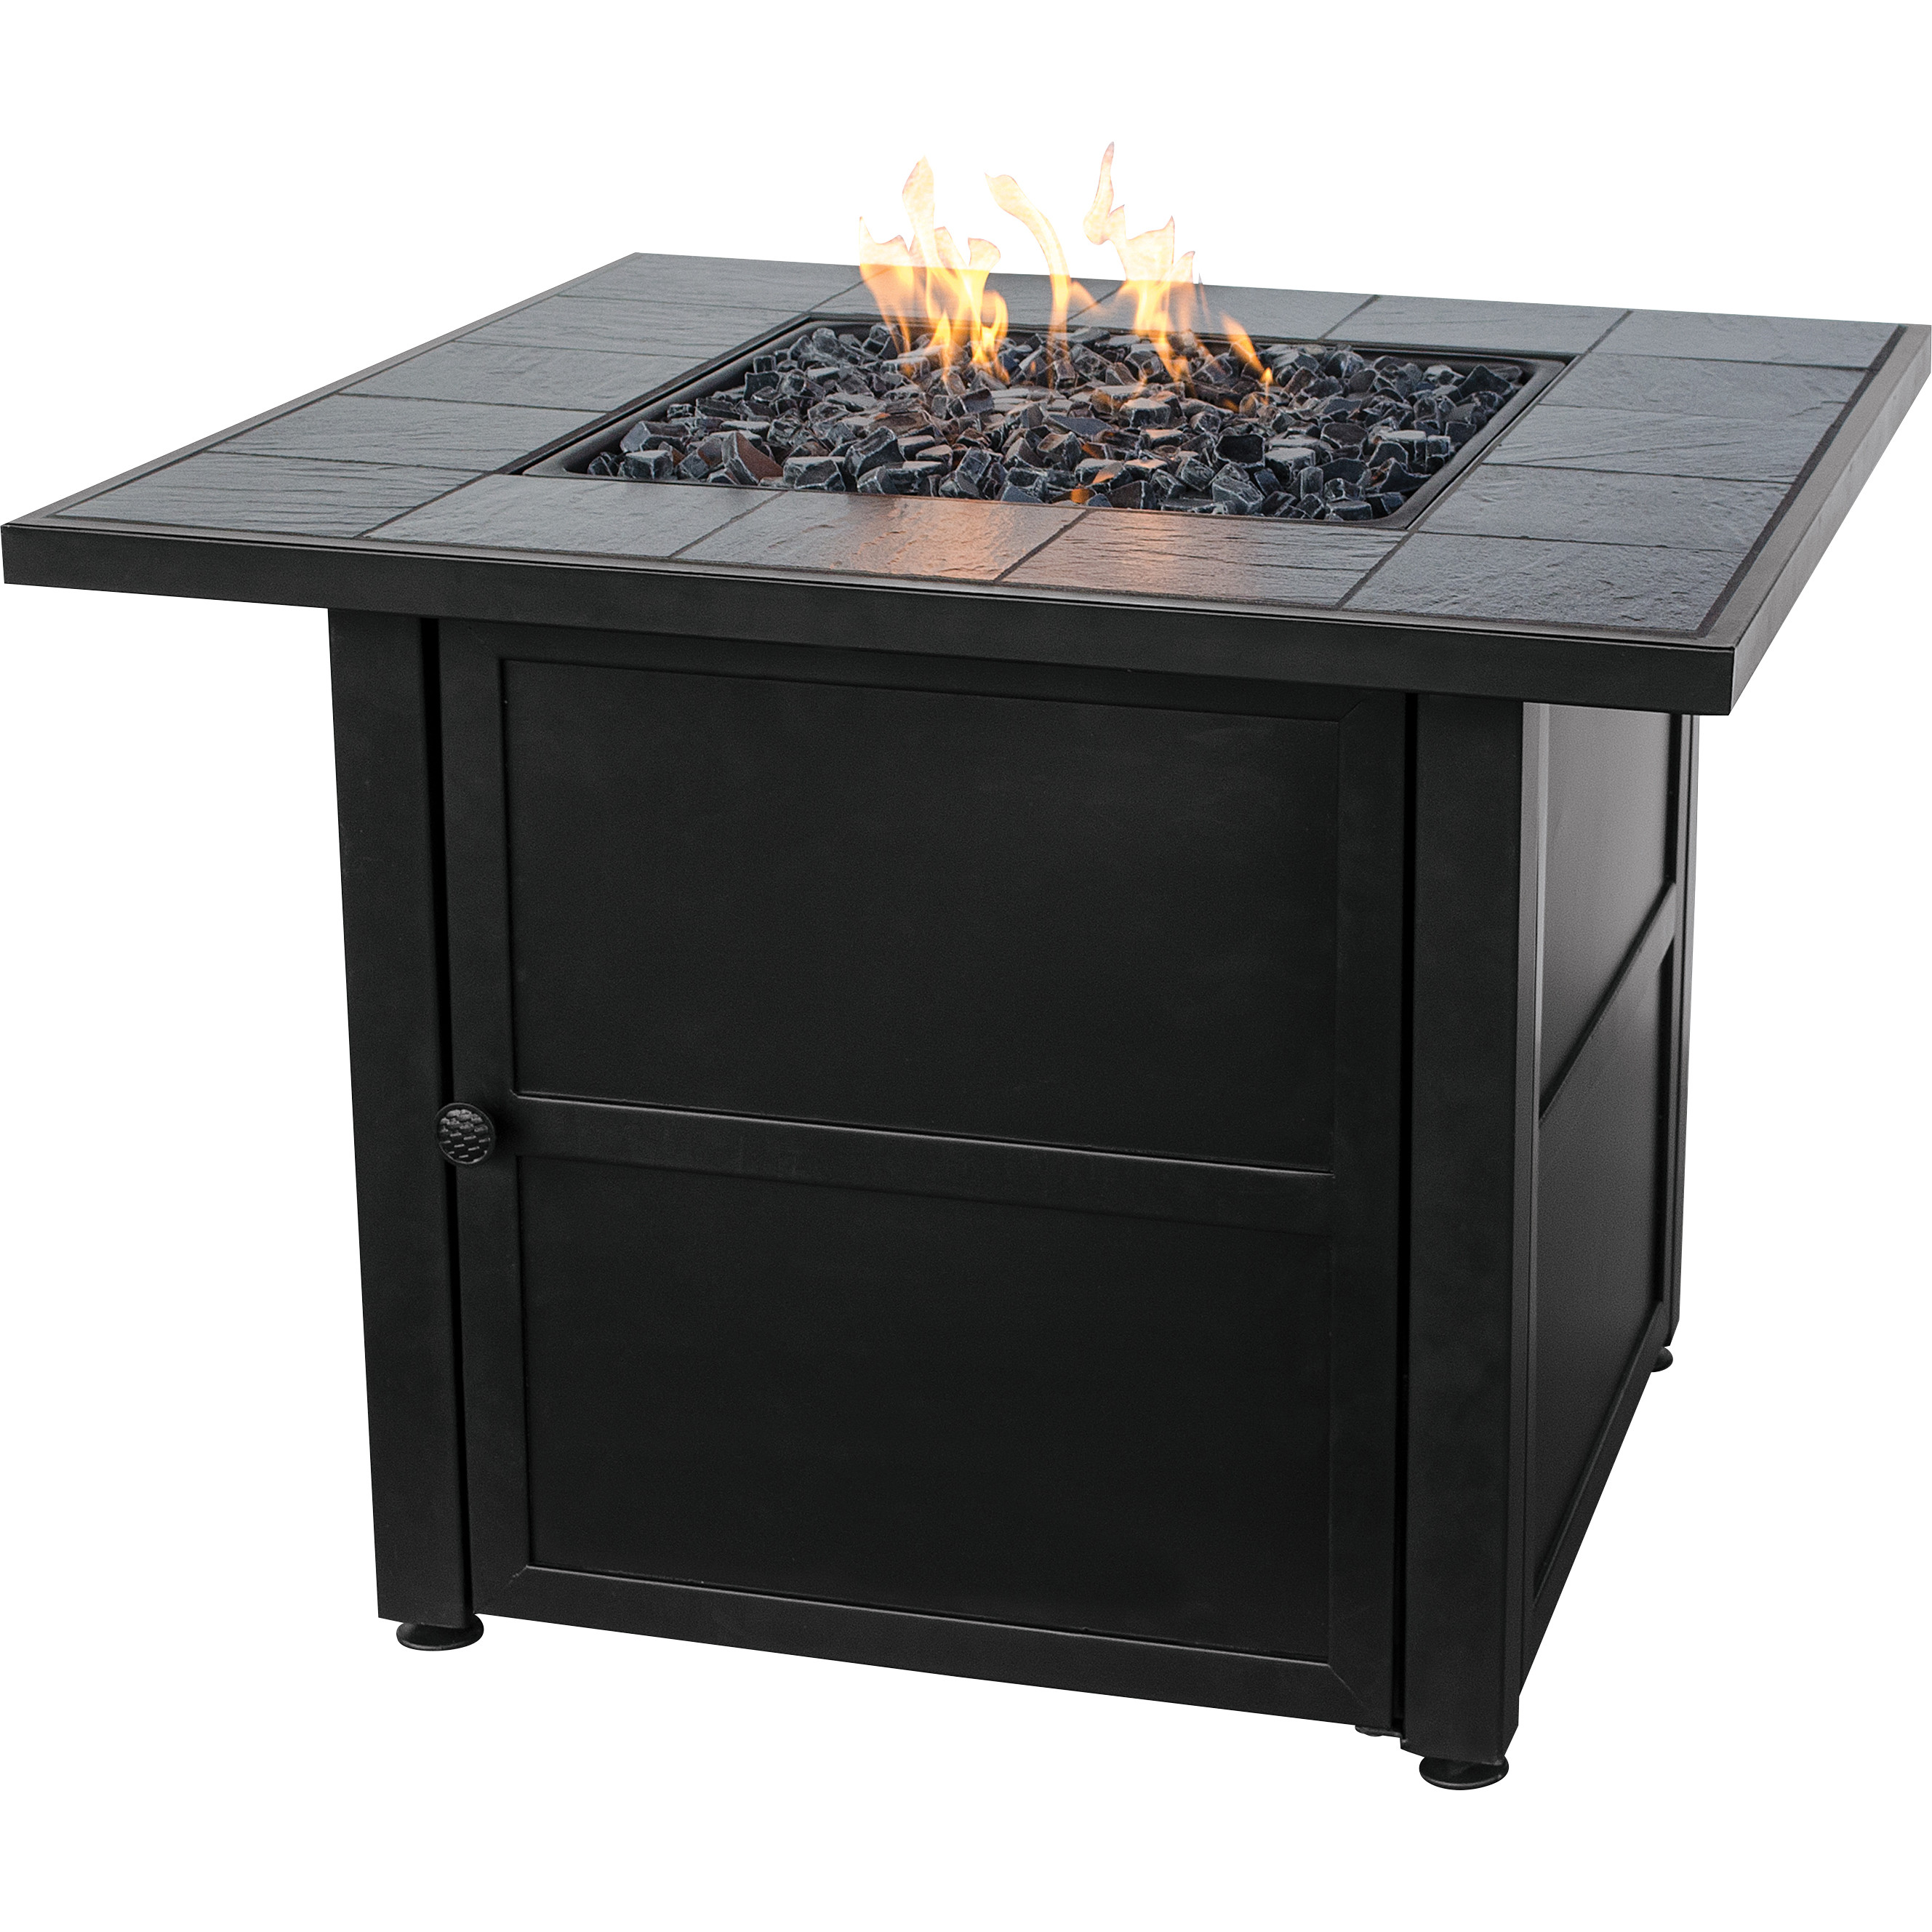 Uniflame Corporation LP Gas Outdoor Firebowl GAD1399SP The